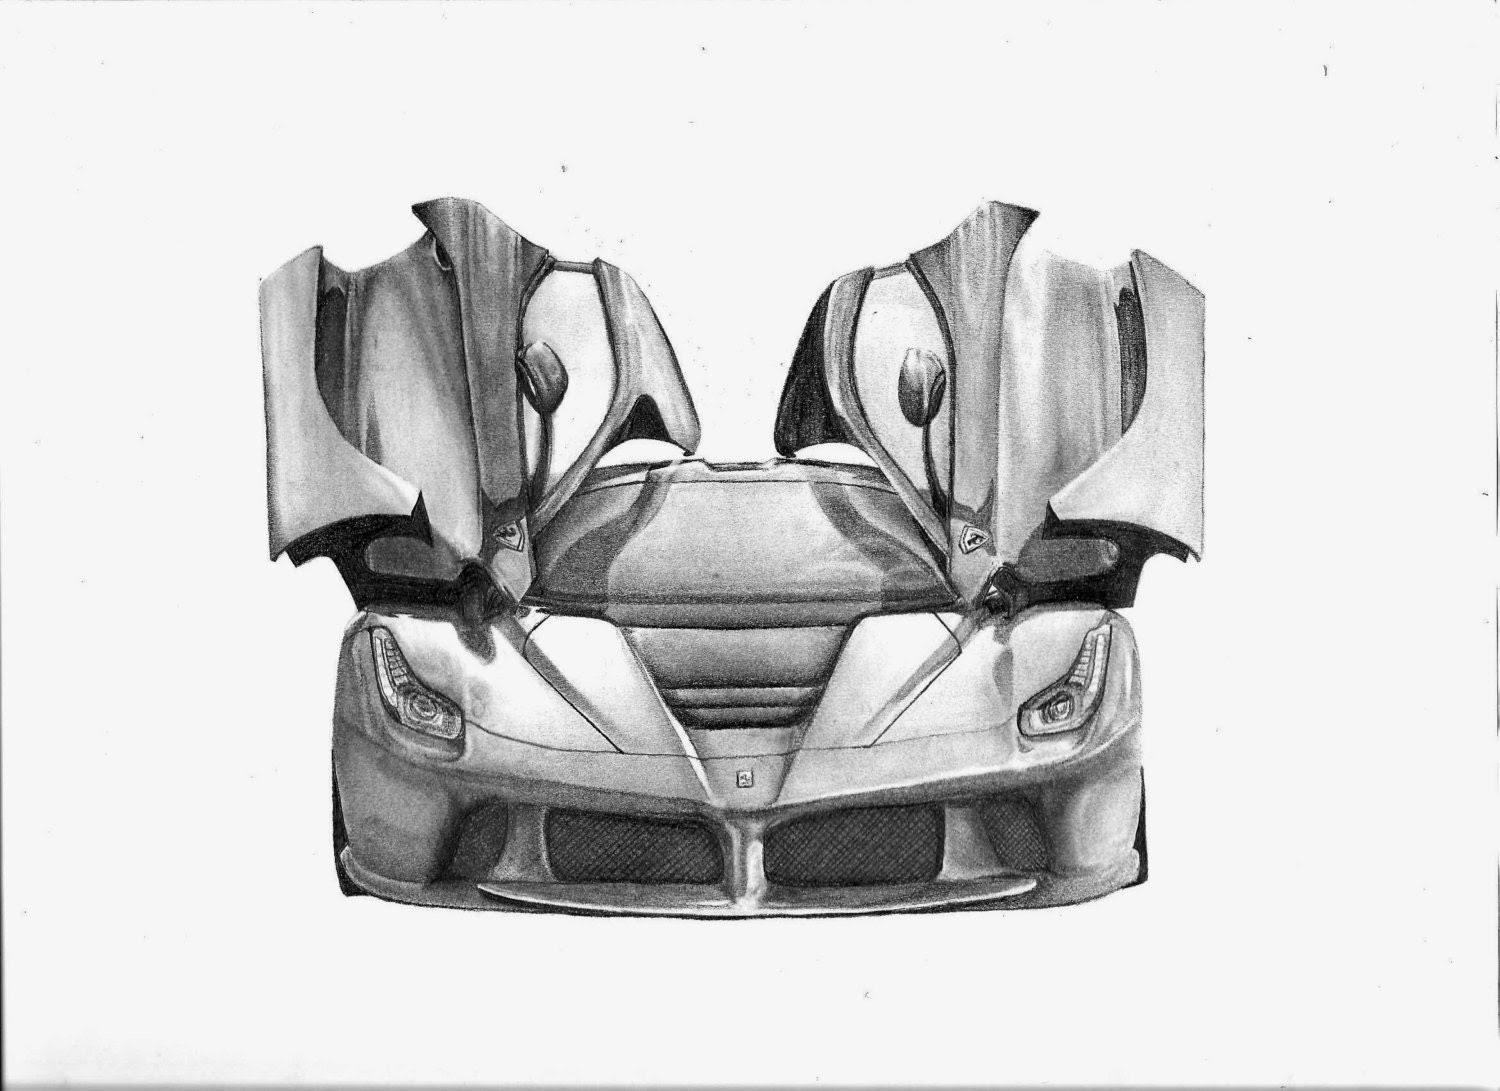 Items similar to Photocopy of an original LaFerrari drawing on Etsy